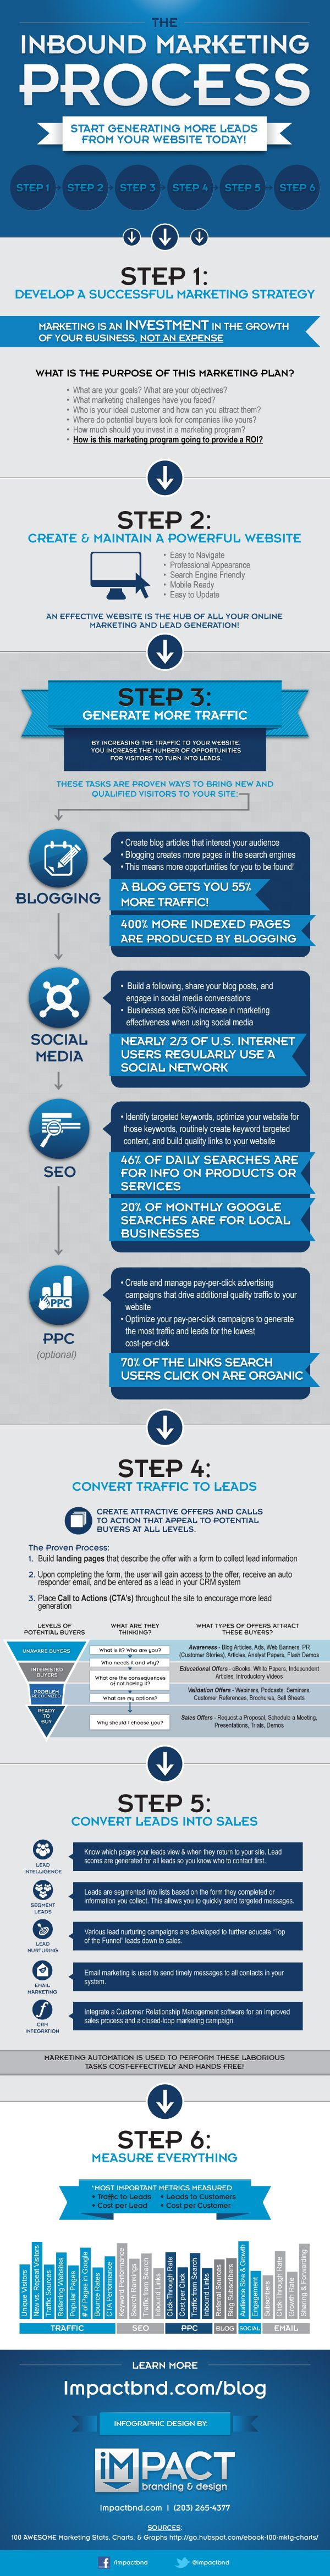 """The Inbound Marketing Process""  Inbound marketing is no cakewalk. Marketers who are embracing inbound have a variety of different channels and tactics to master, including content creation, SEO, social media, lead generation, lead management, and analytics. It's no wonder that marketers new to inbound end up feeling overwhelmed and wondering what to tackle first."